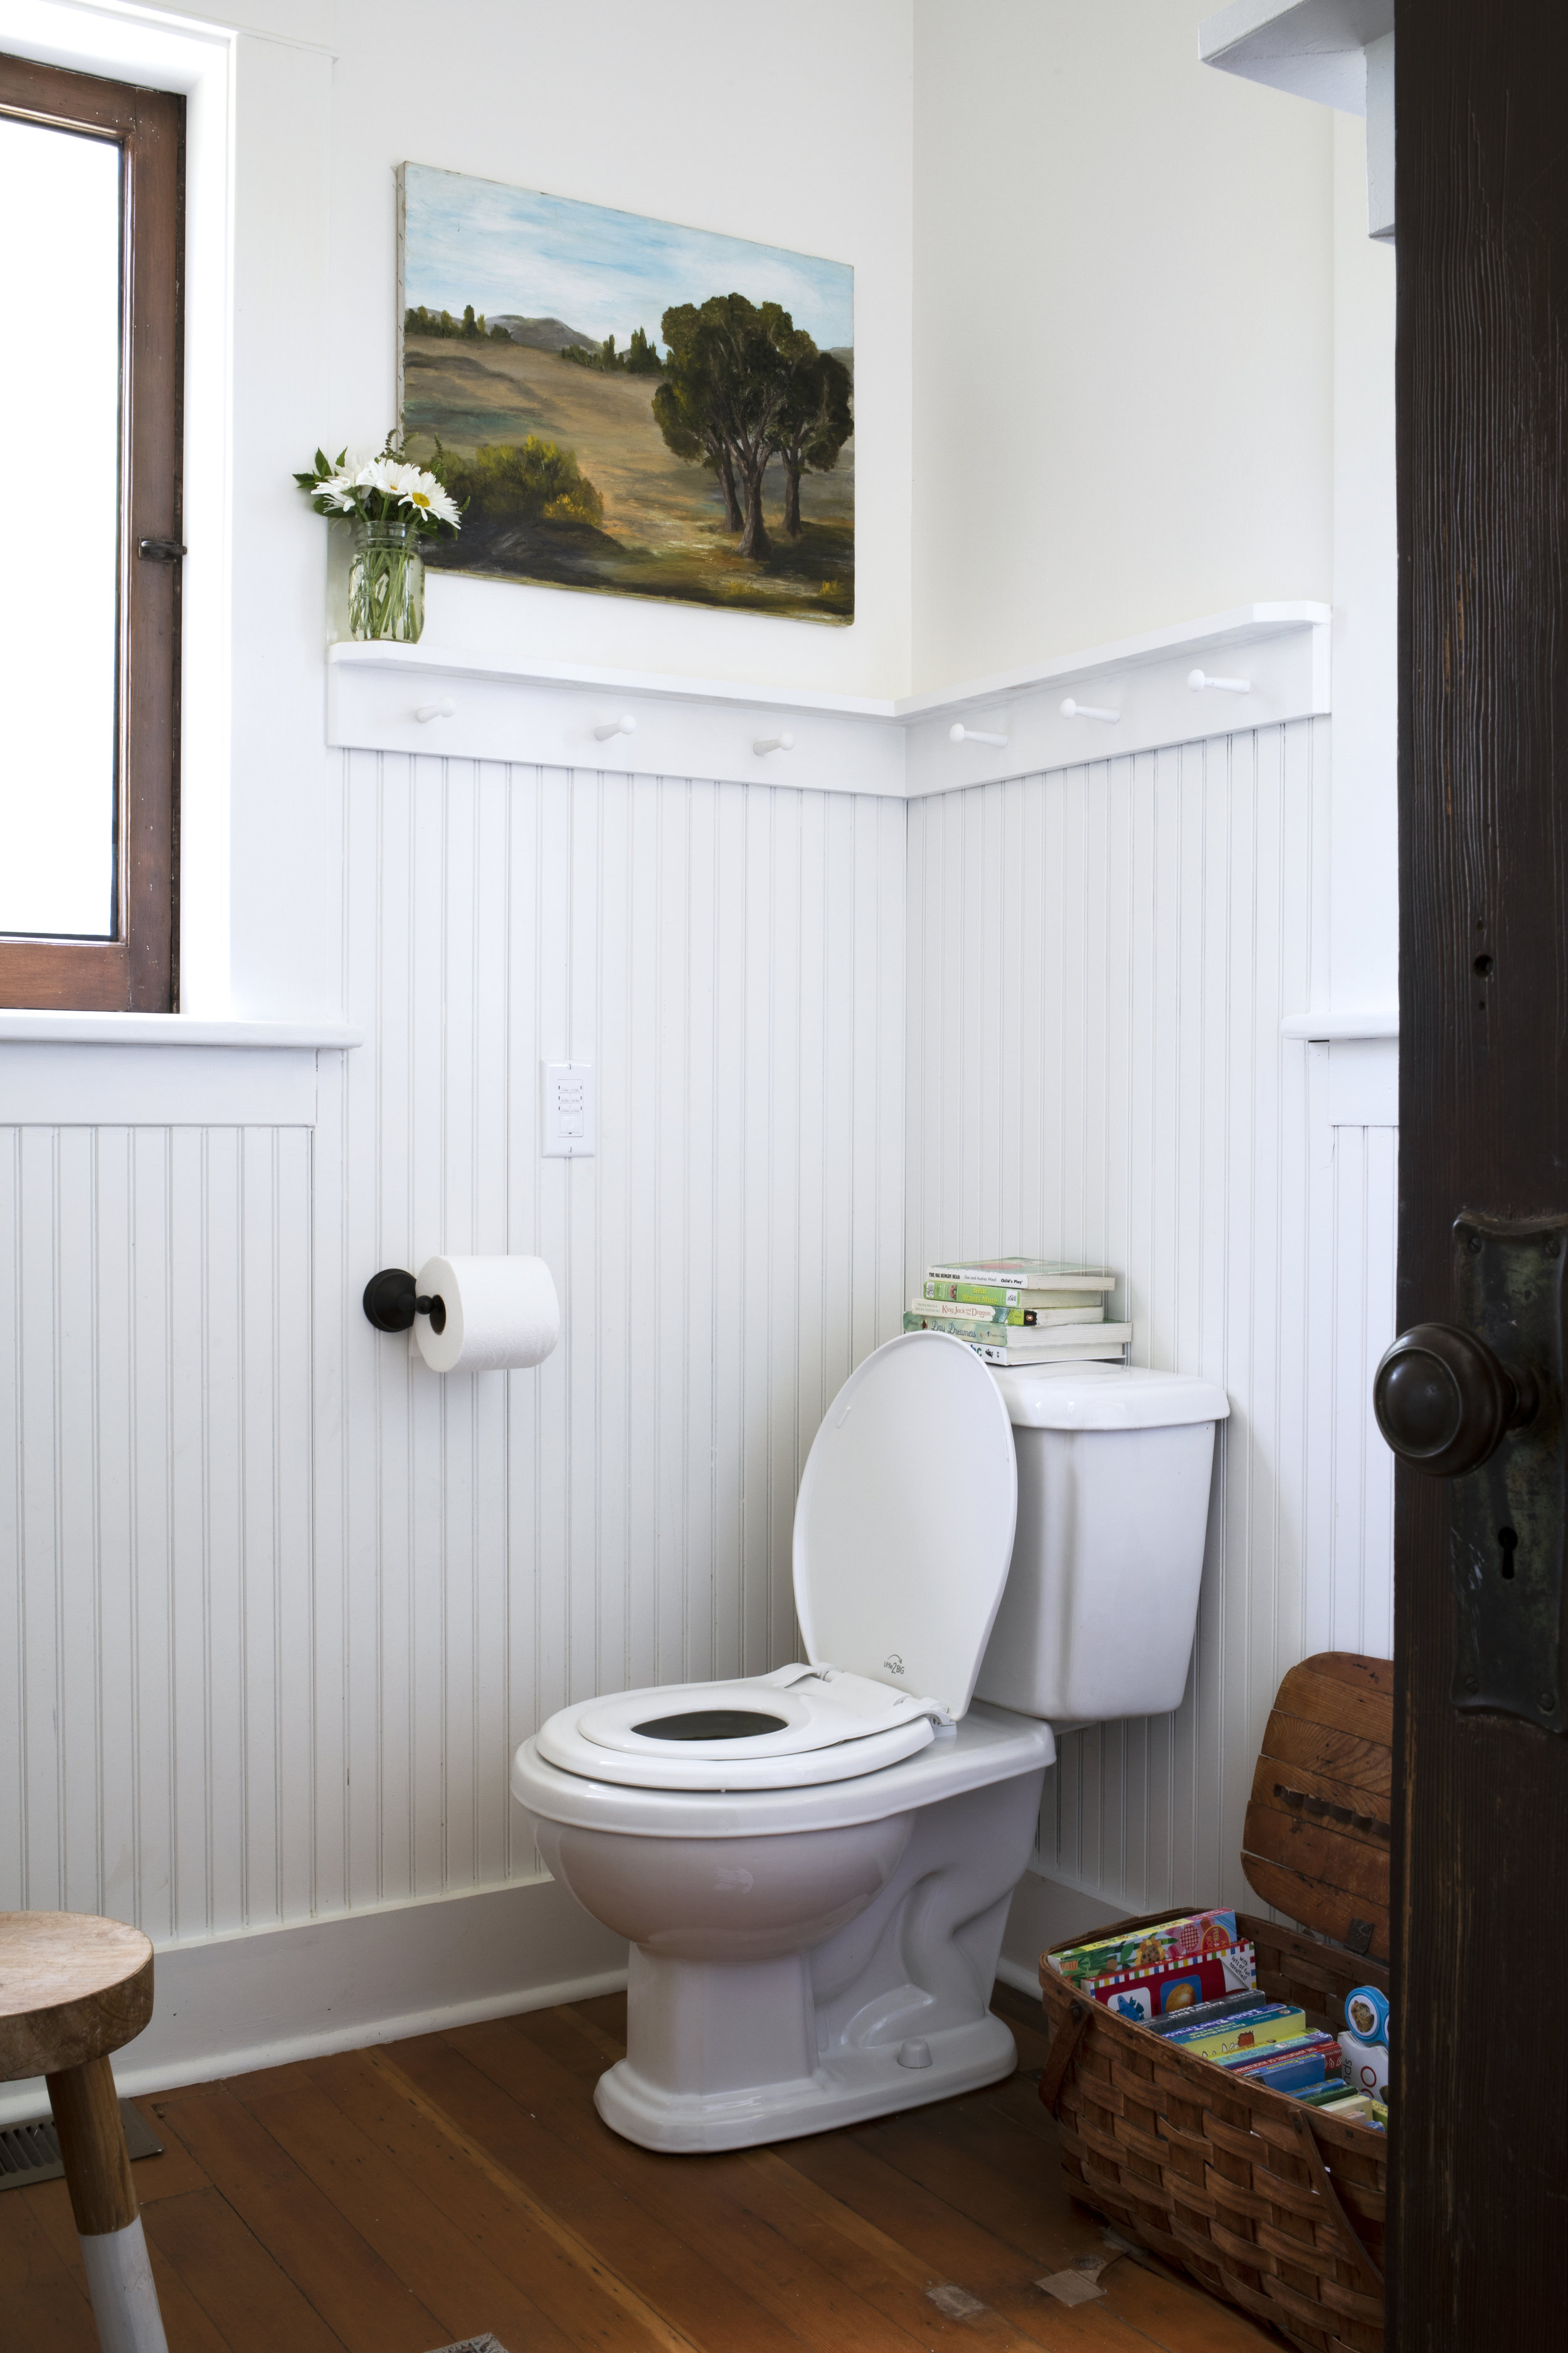 The Grit and Polish - Farmhouse Bathroom Potty Training 10.jpg